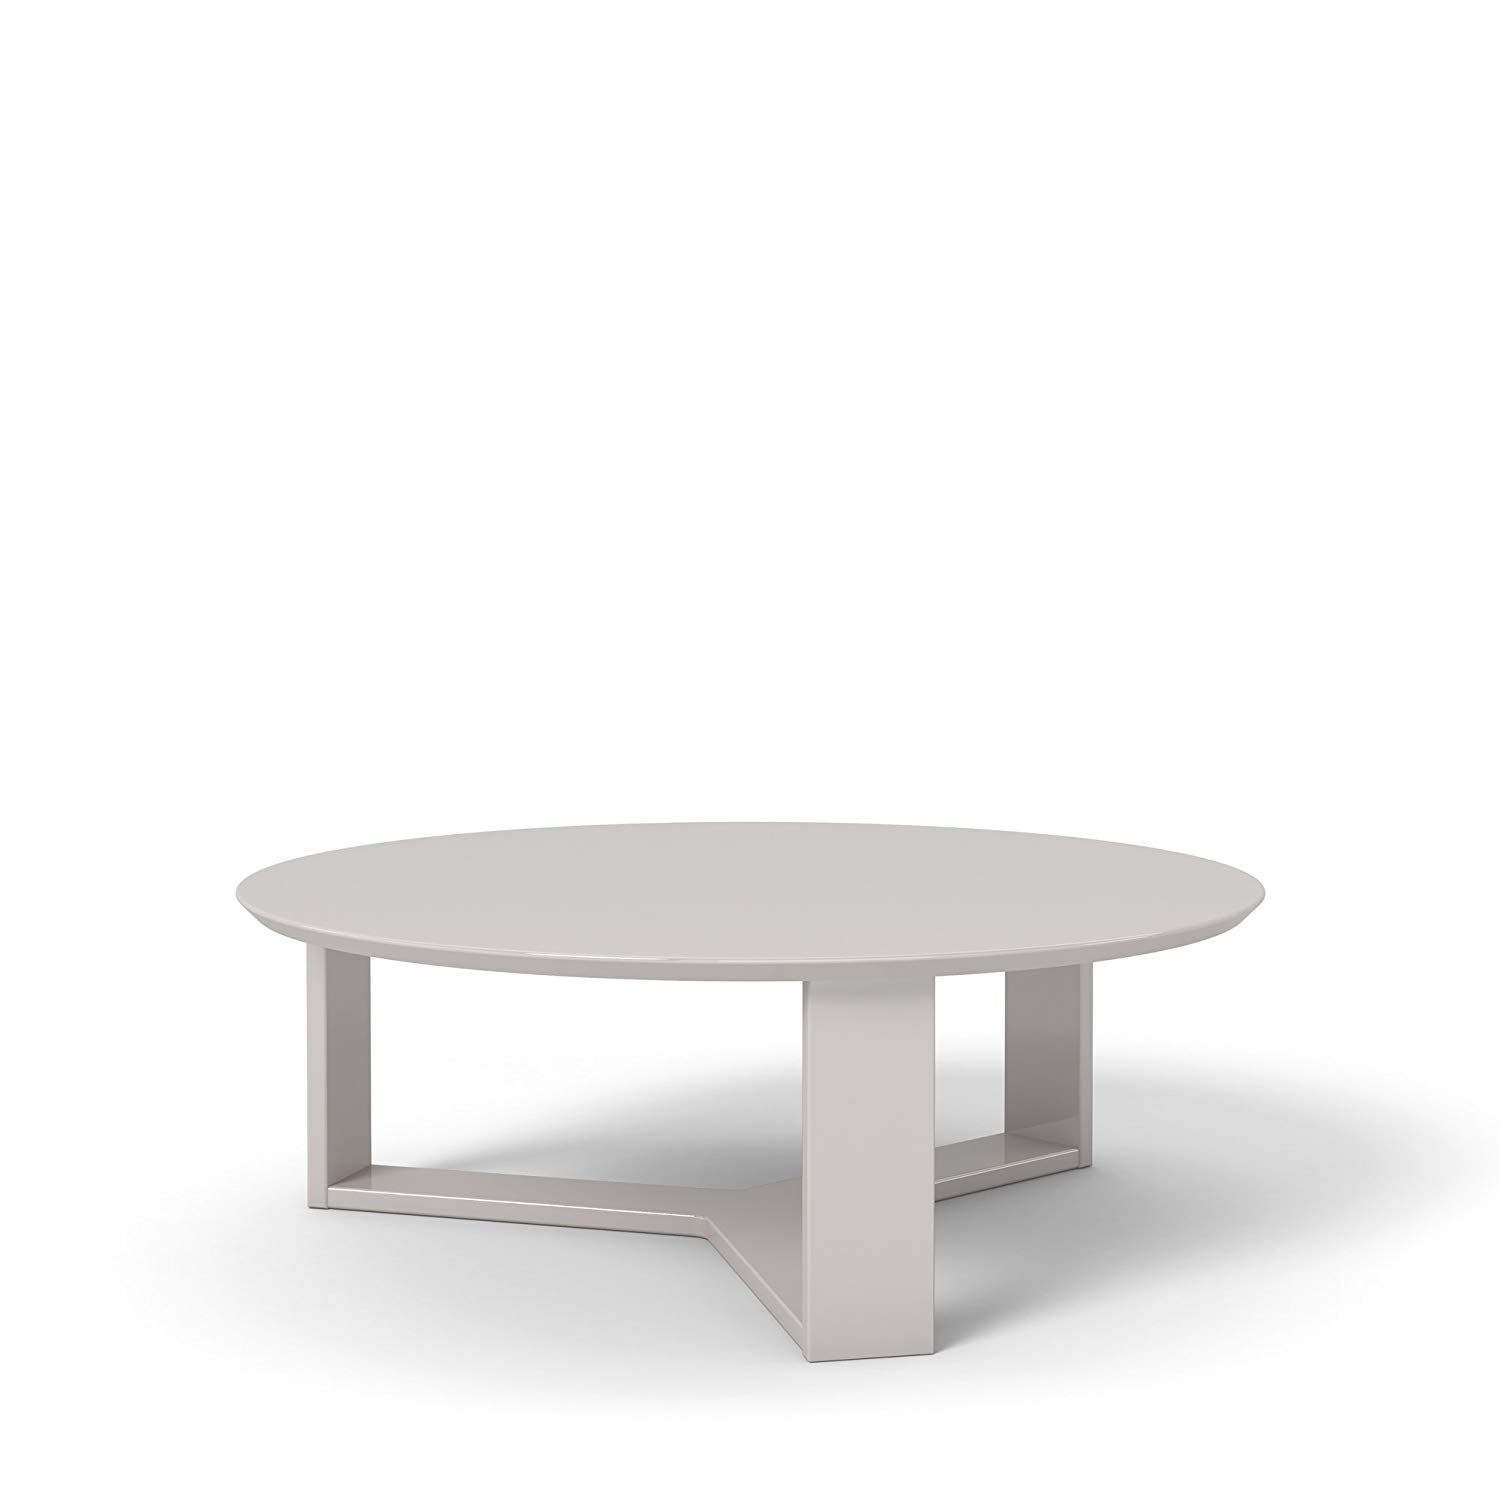 manhattan comfort madison coffee table collection room essentials accent instructions round living off white kitchen threshold marble unique lamps half end patio furniture covers